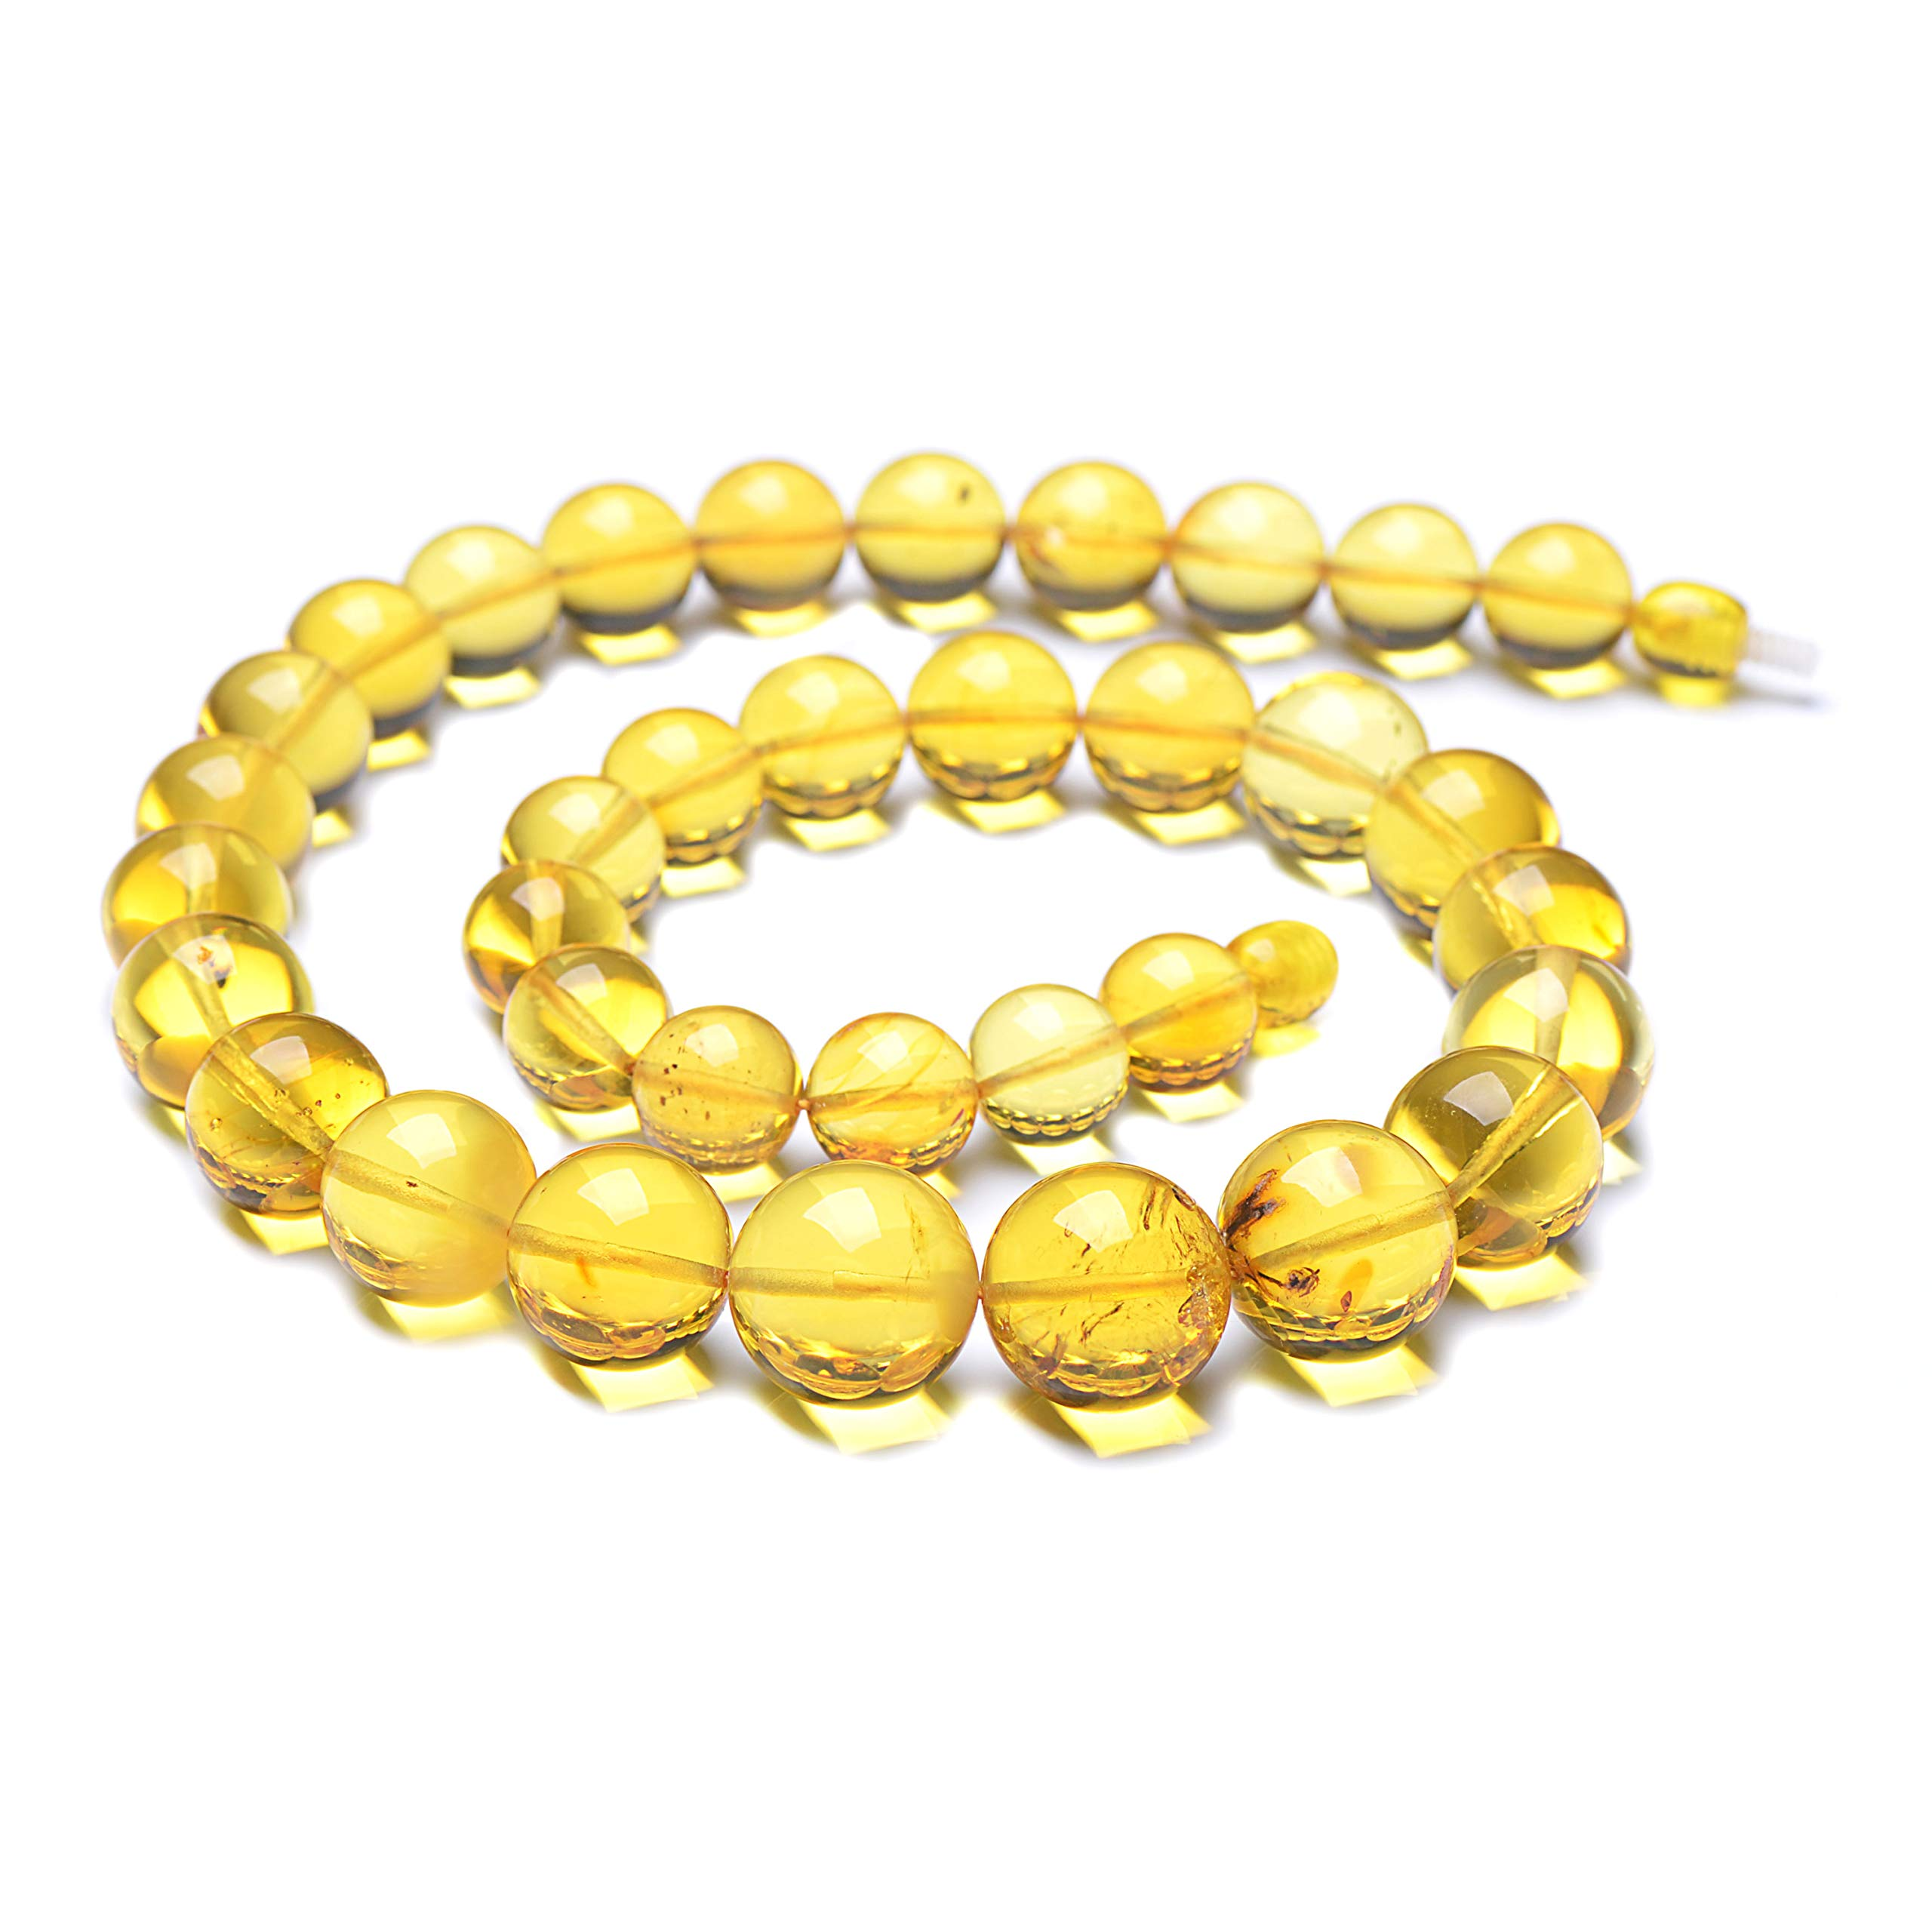 Round Bead Necklace - Lemon Baltic Amber Necklace - Unique Women Necklace - Round Shape Bead Necklace by Genuine Amber